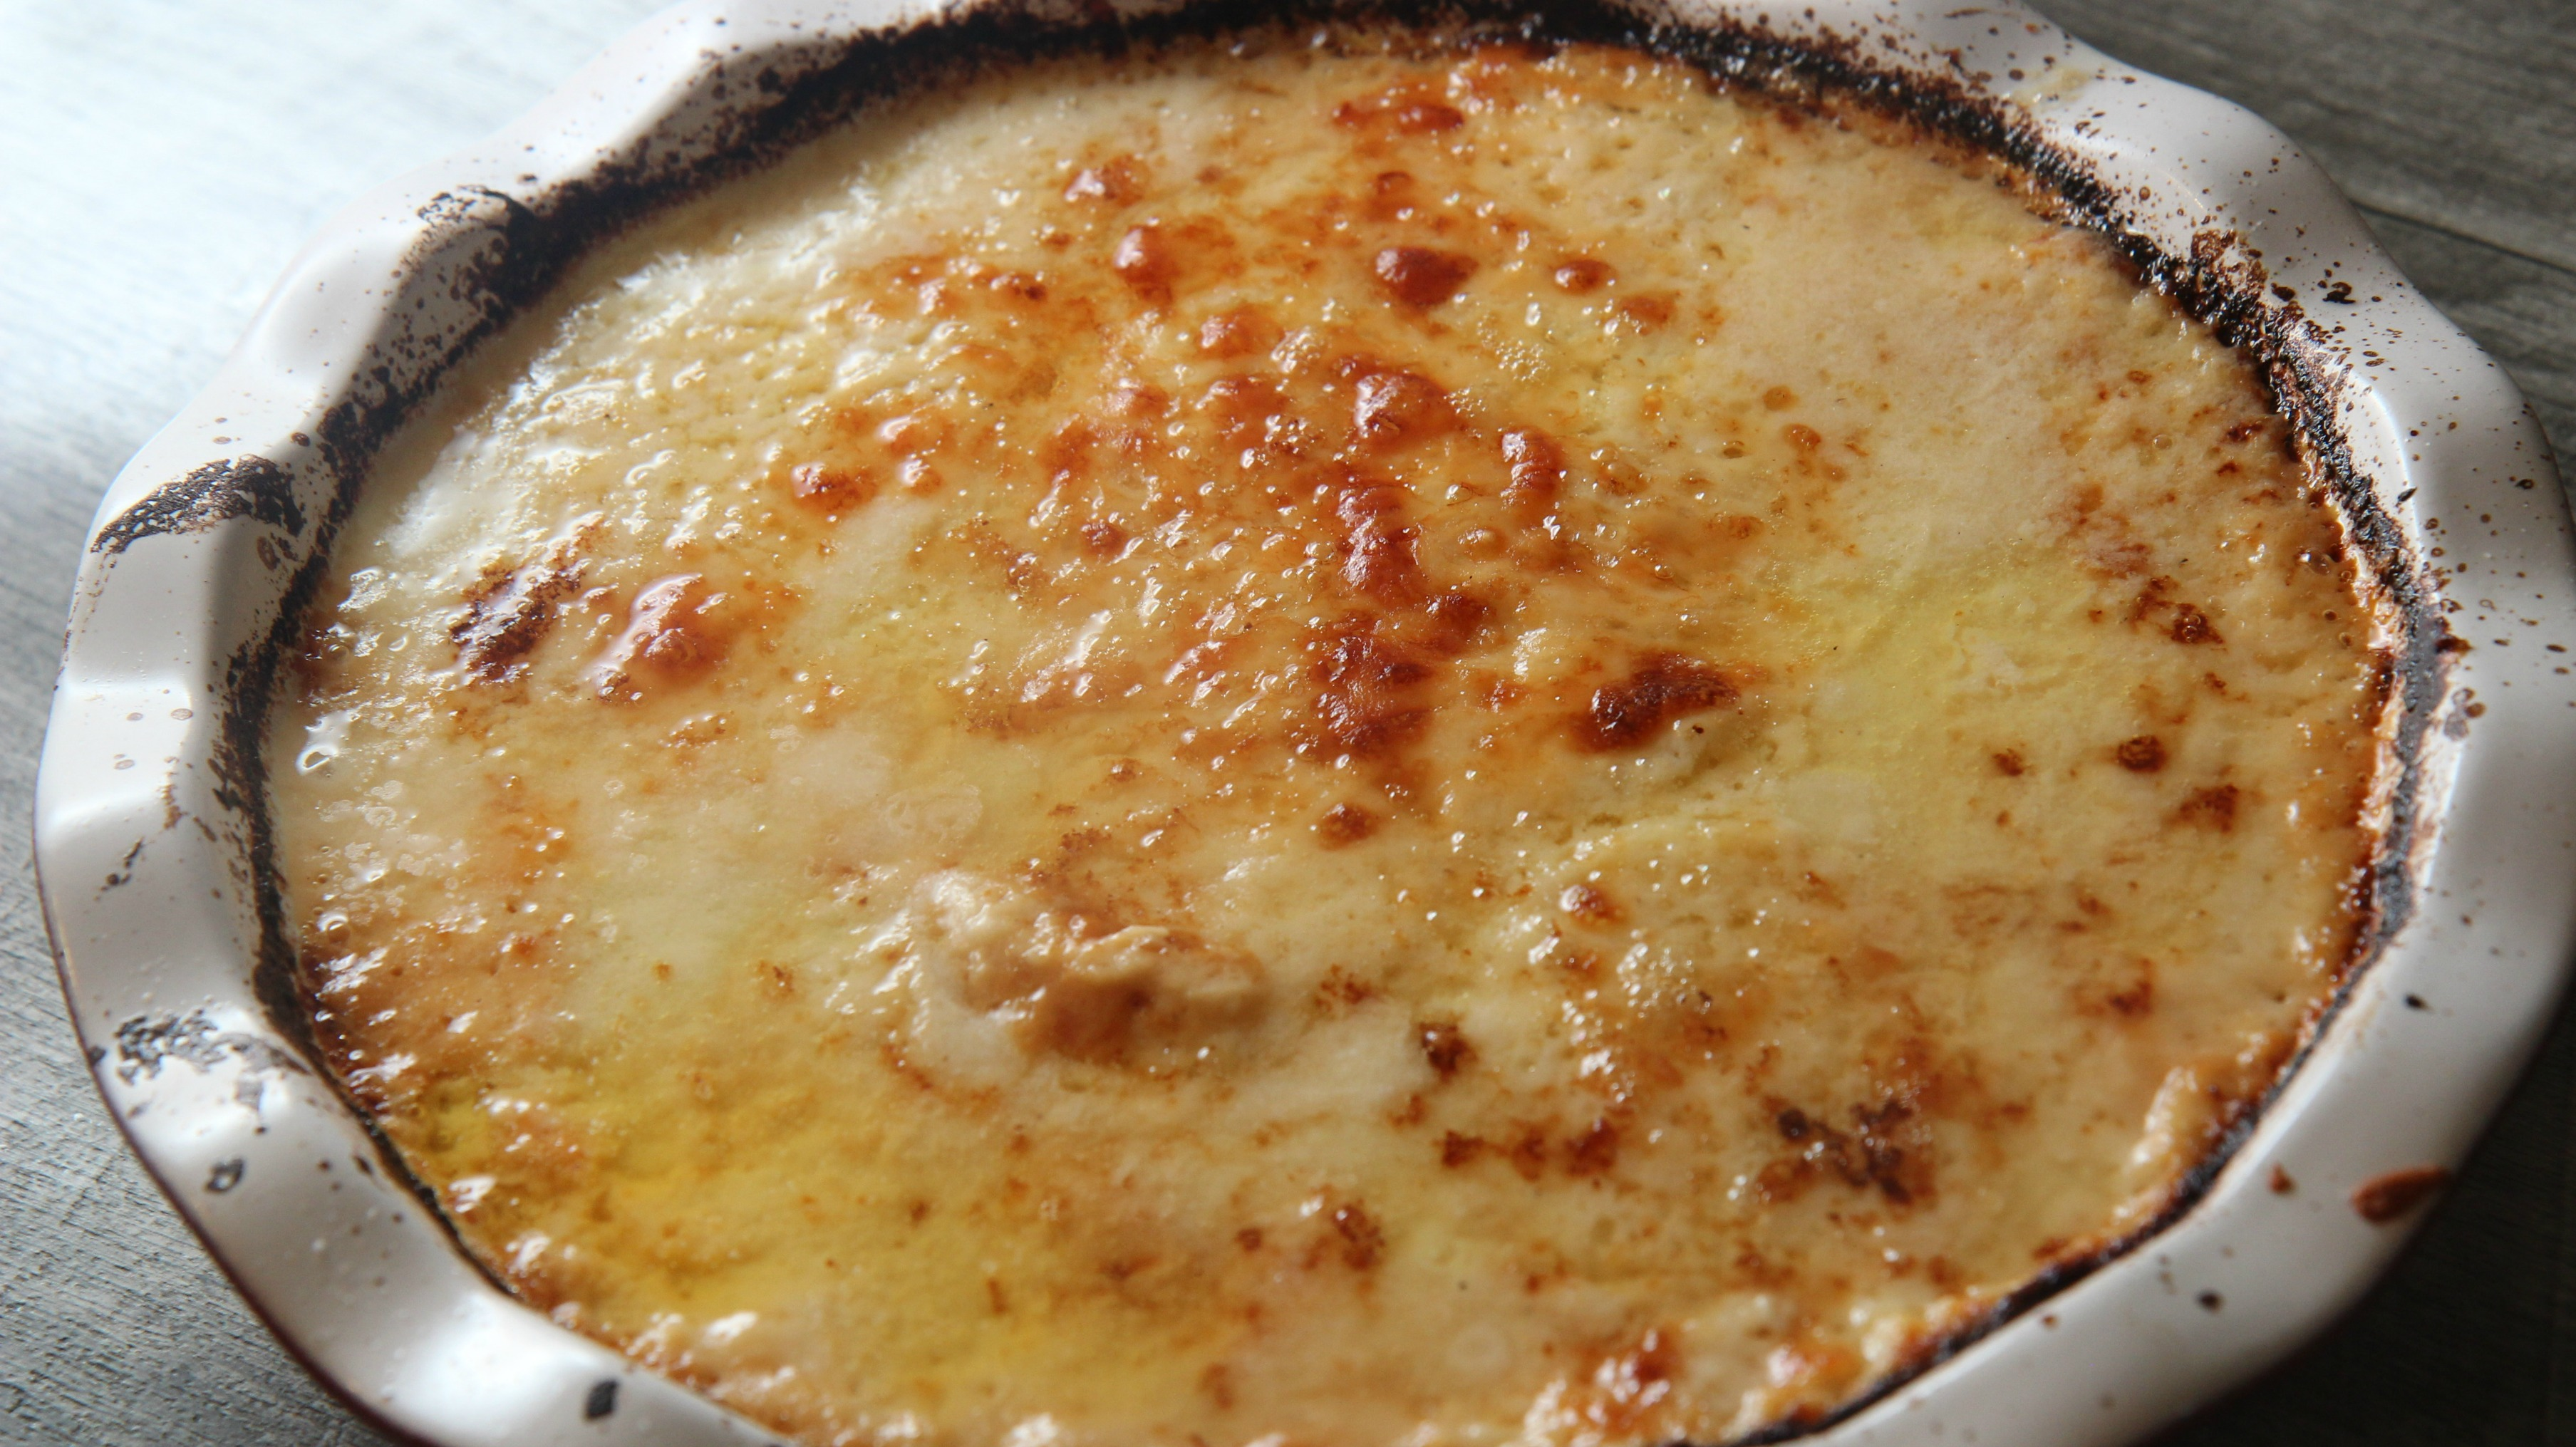 oven baked cheesy scalloped potatoes in a white pie dish: Cooked by Julie